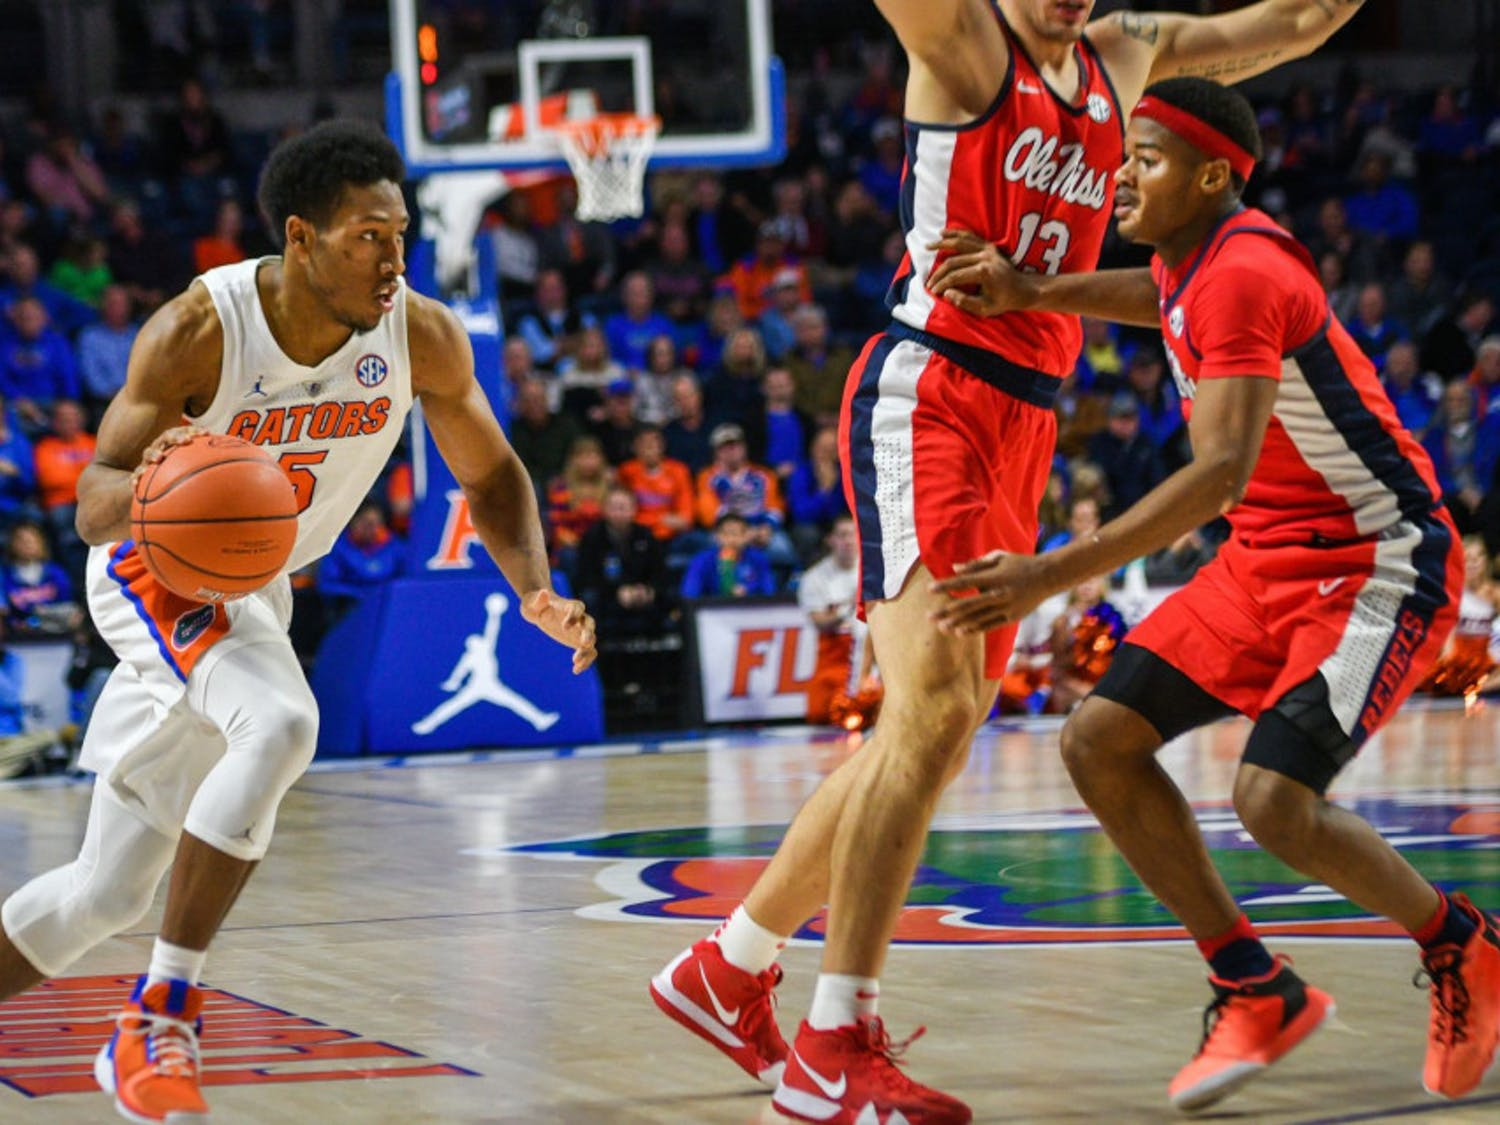 Senior guard KeVaughn Allen scored 21 points with five assists in the Gators' 90-86 overtime win over Ole Miss.